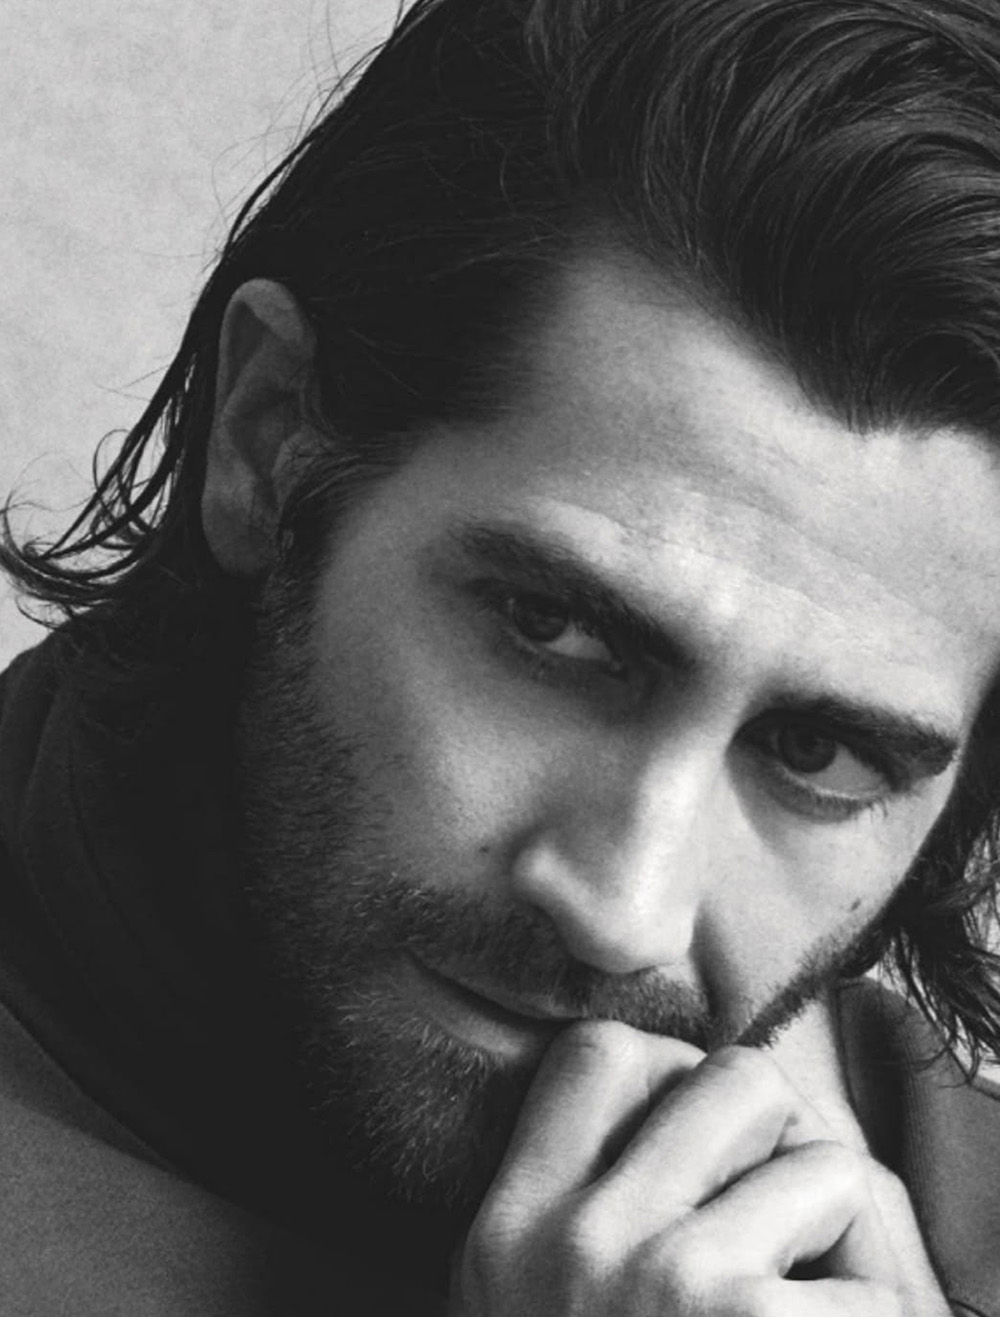 Jake Gyllenhaal by Christian MacDonald for British Vogue June 2020